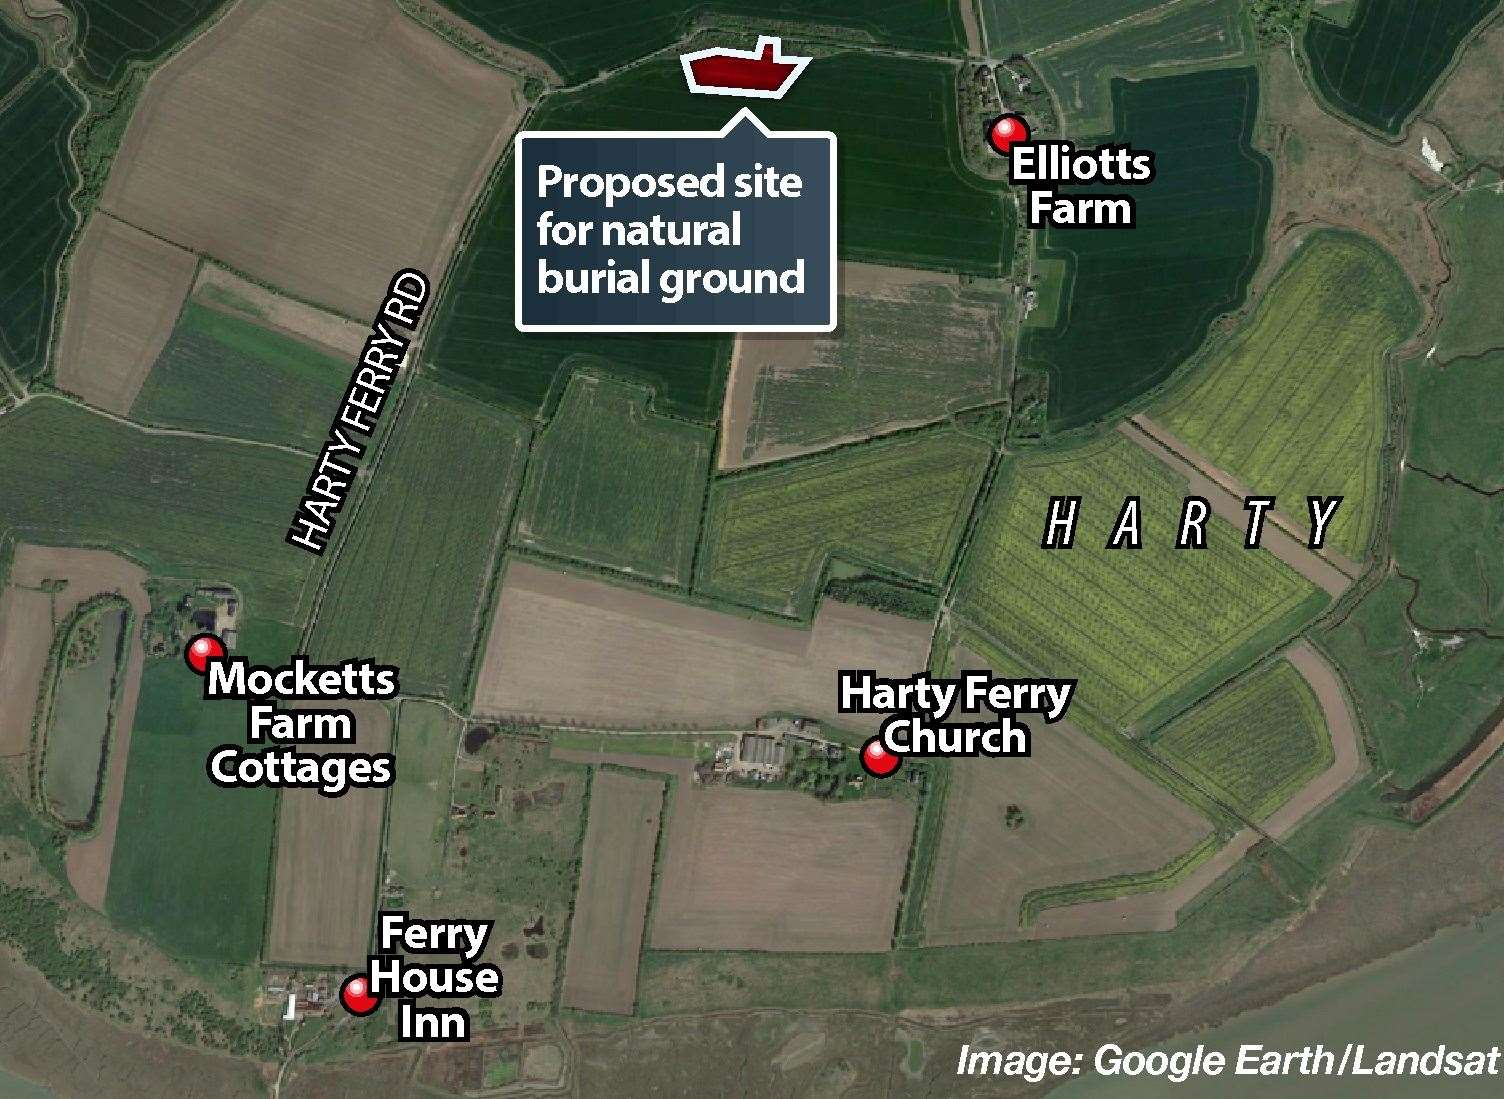 A graphic showing whereabouts the proposed natural burial ground would be at Harty